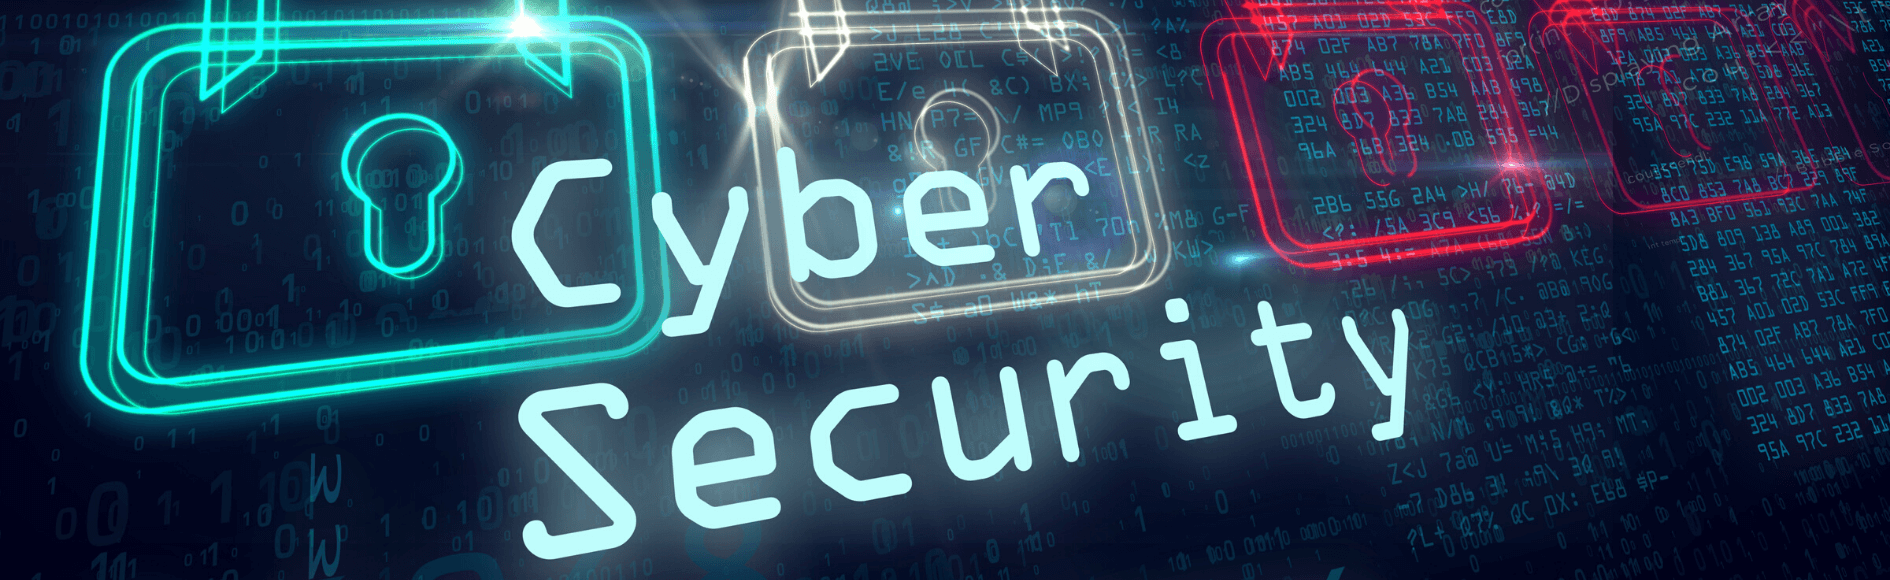 New Cyber Risks